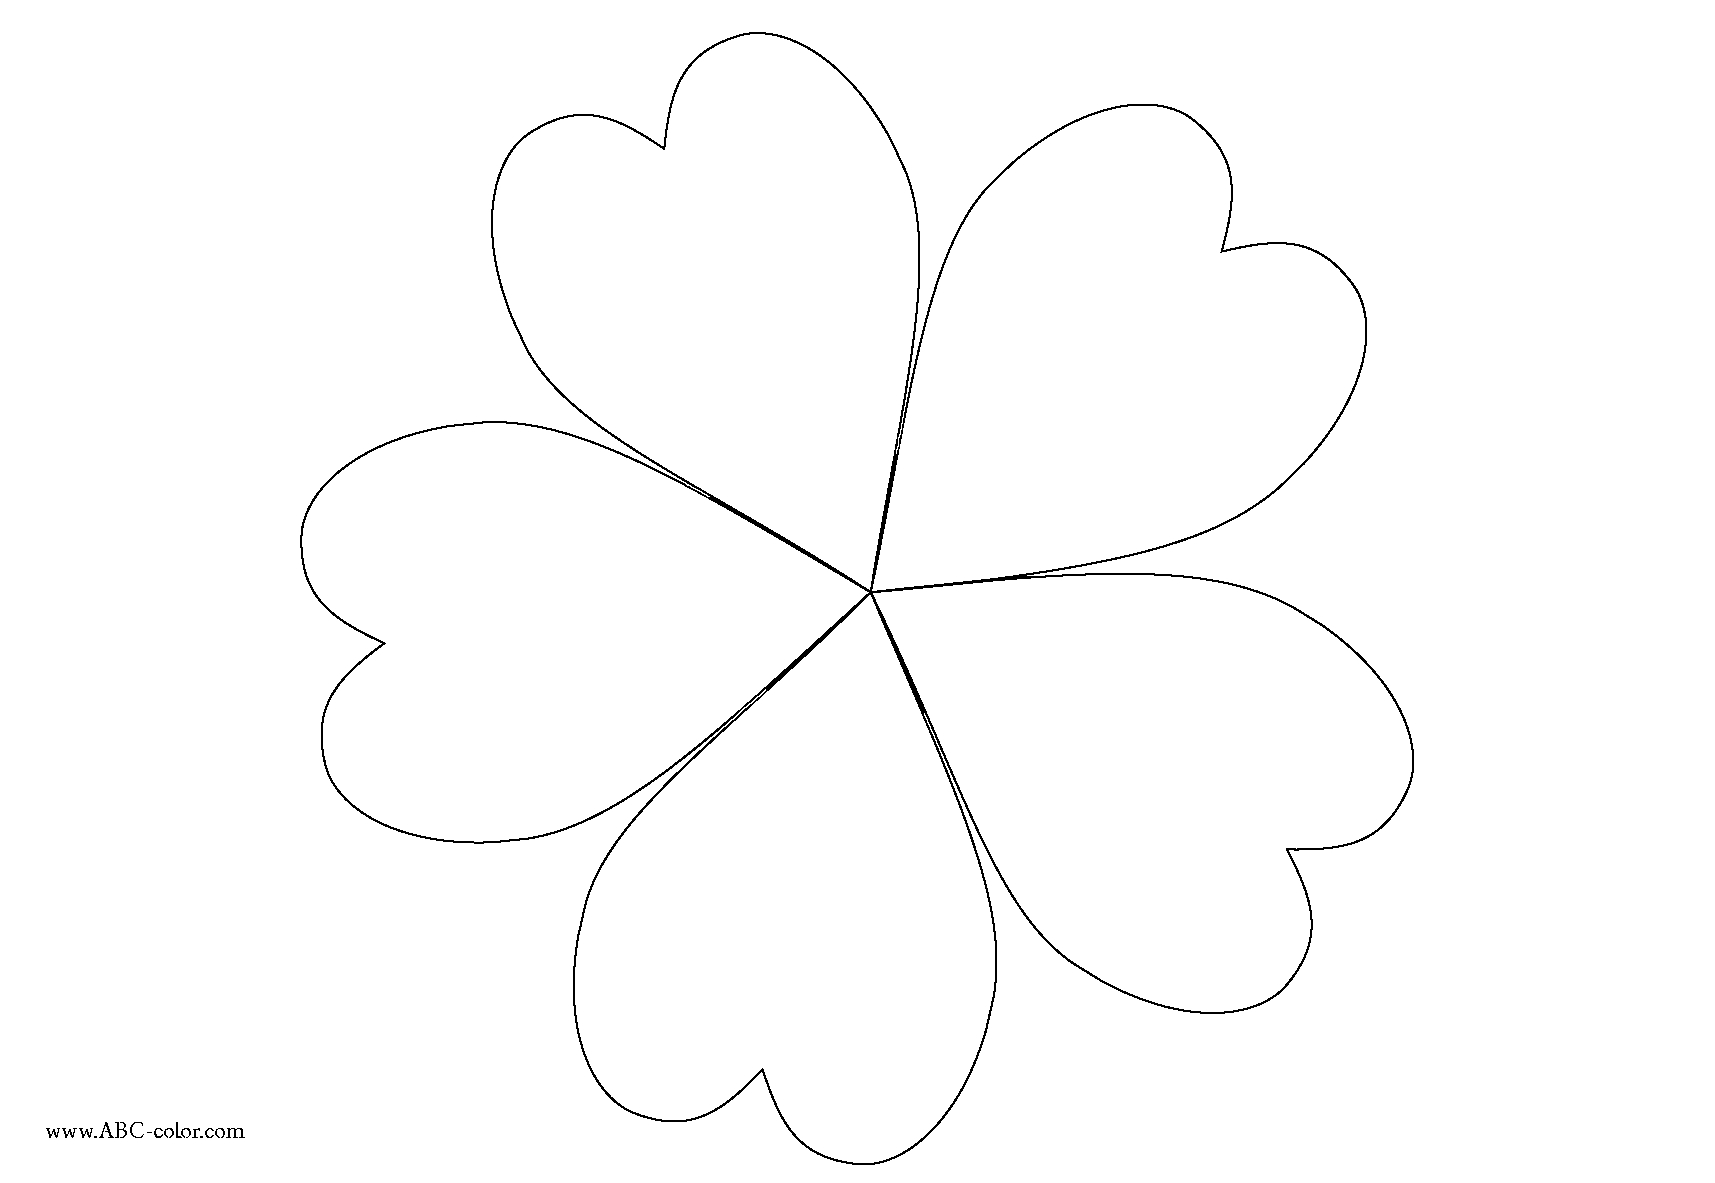 1715x1183 Flower Petals Drawing Five Hearts Coloring. Inflorescence